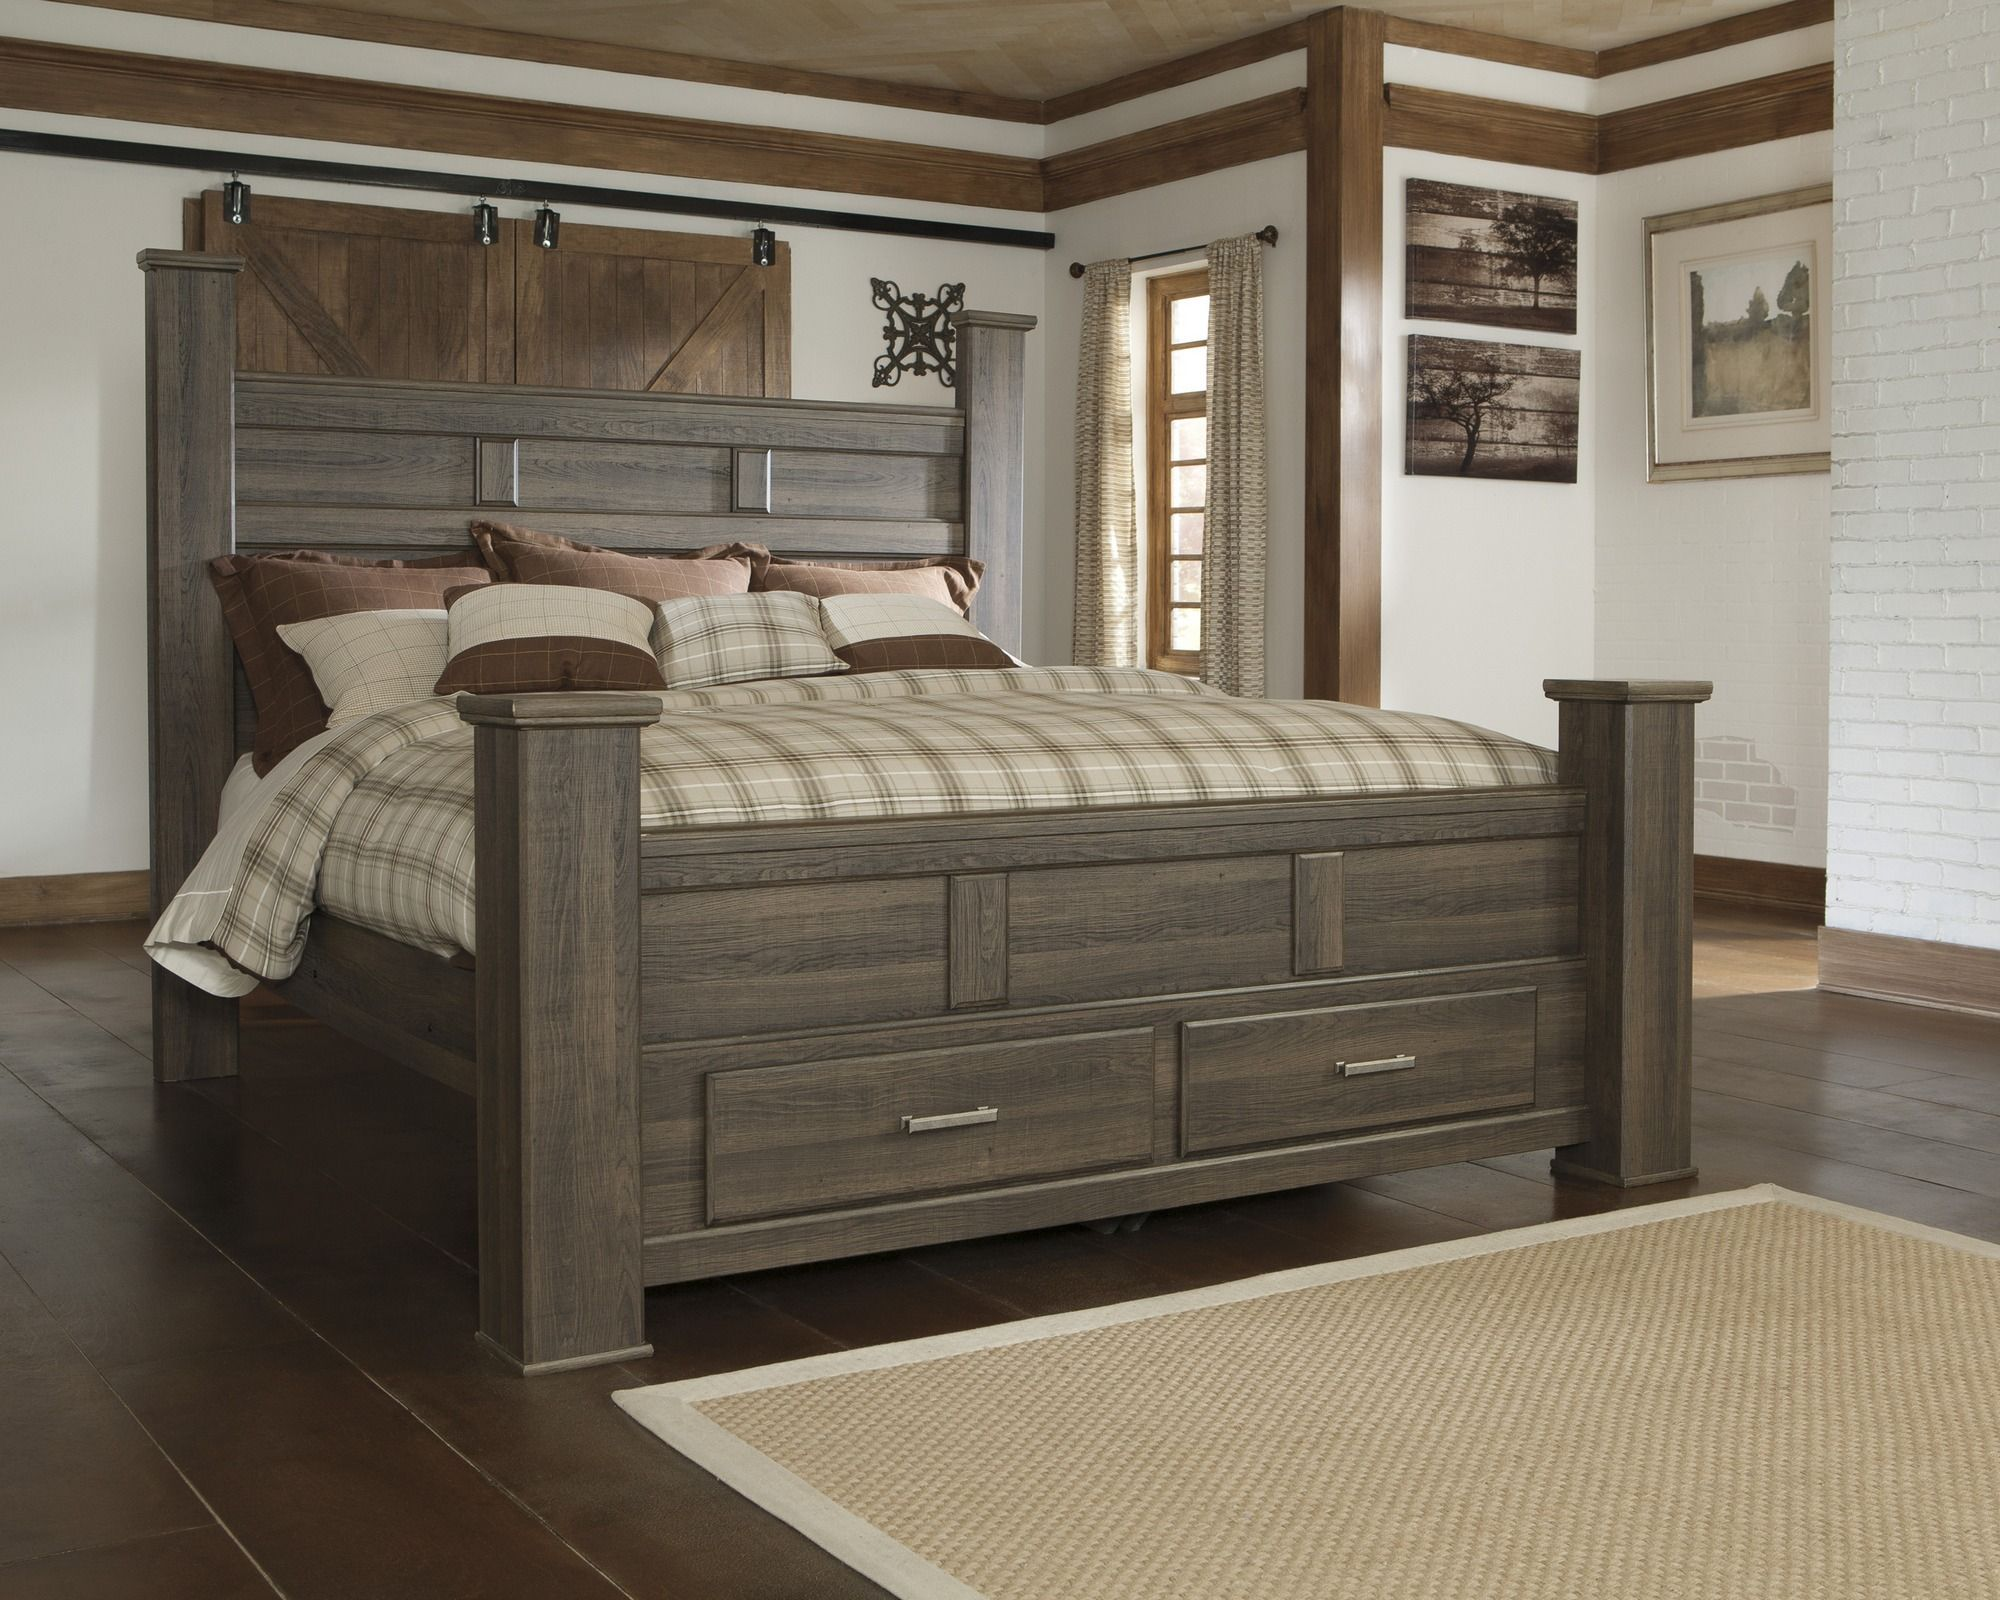 B251 66s Signature By Ashley Juararo King Poster Bed With Storage Dark Brown Big Sandy